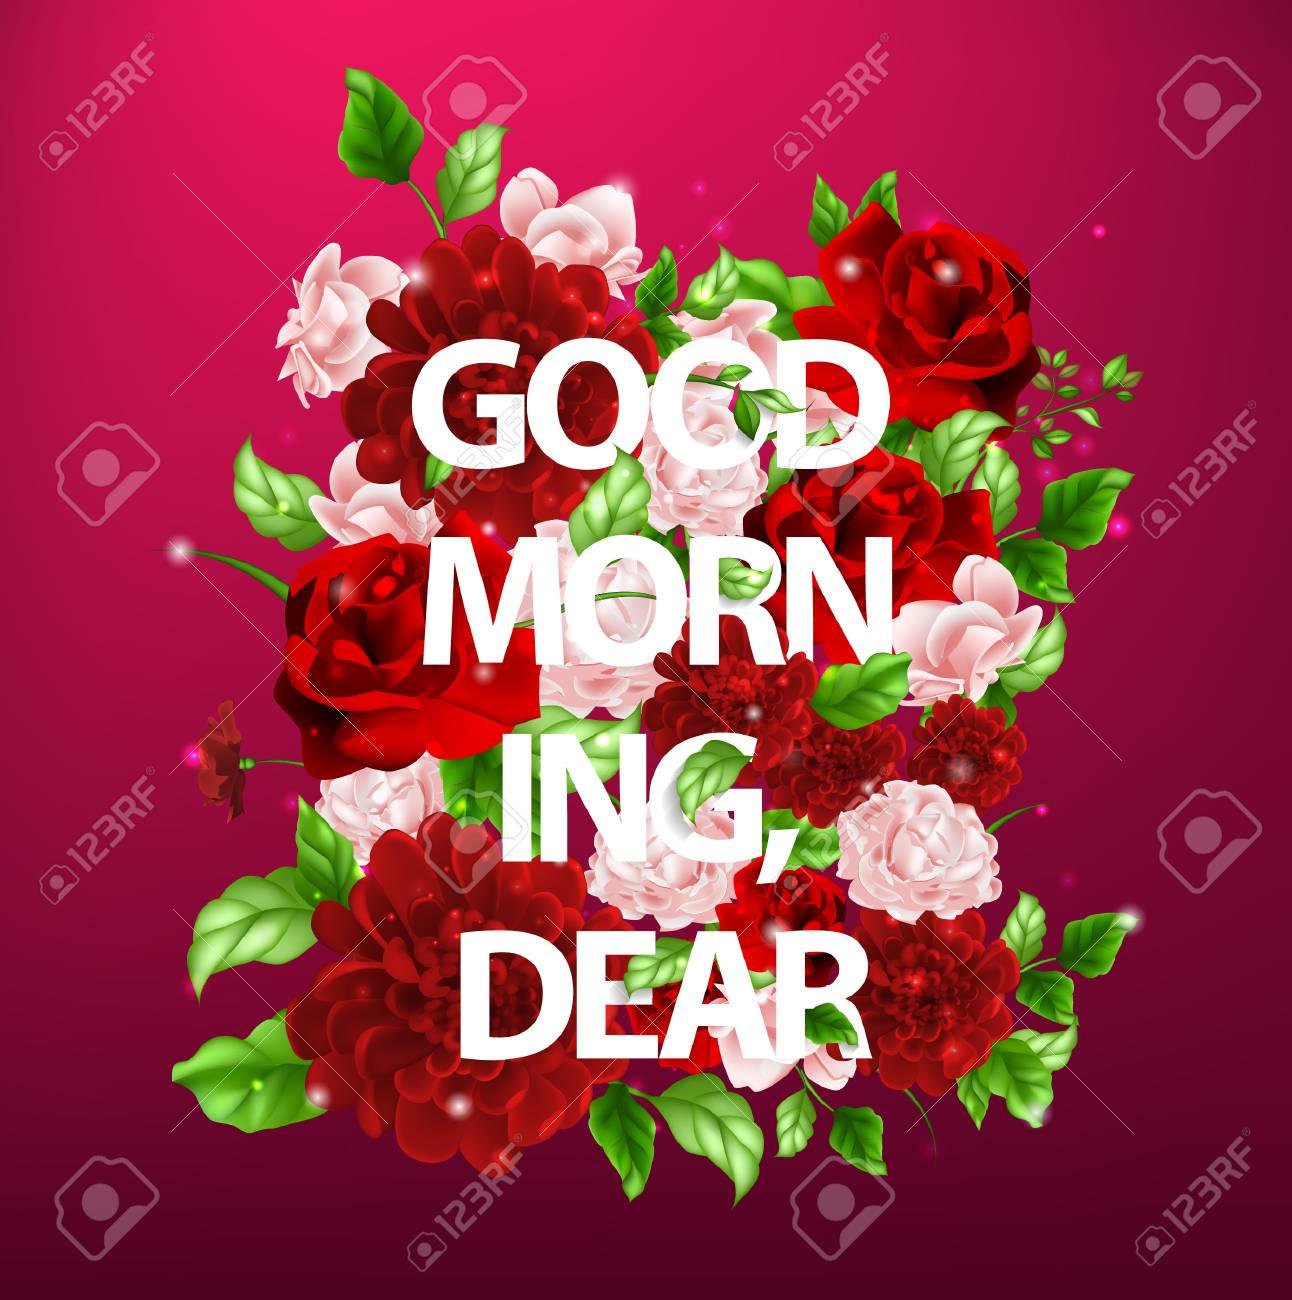 Stock Vector Illustration Of Flowers With Lettering Good Morning ...